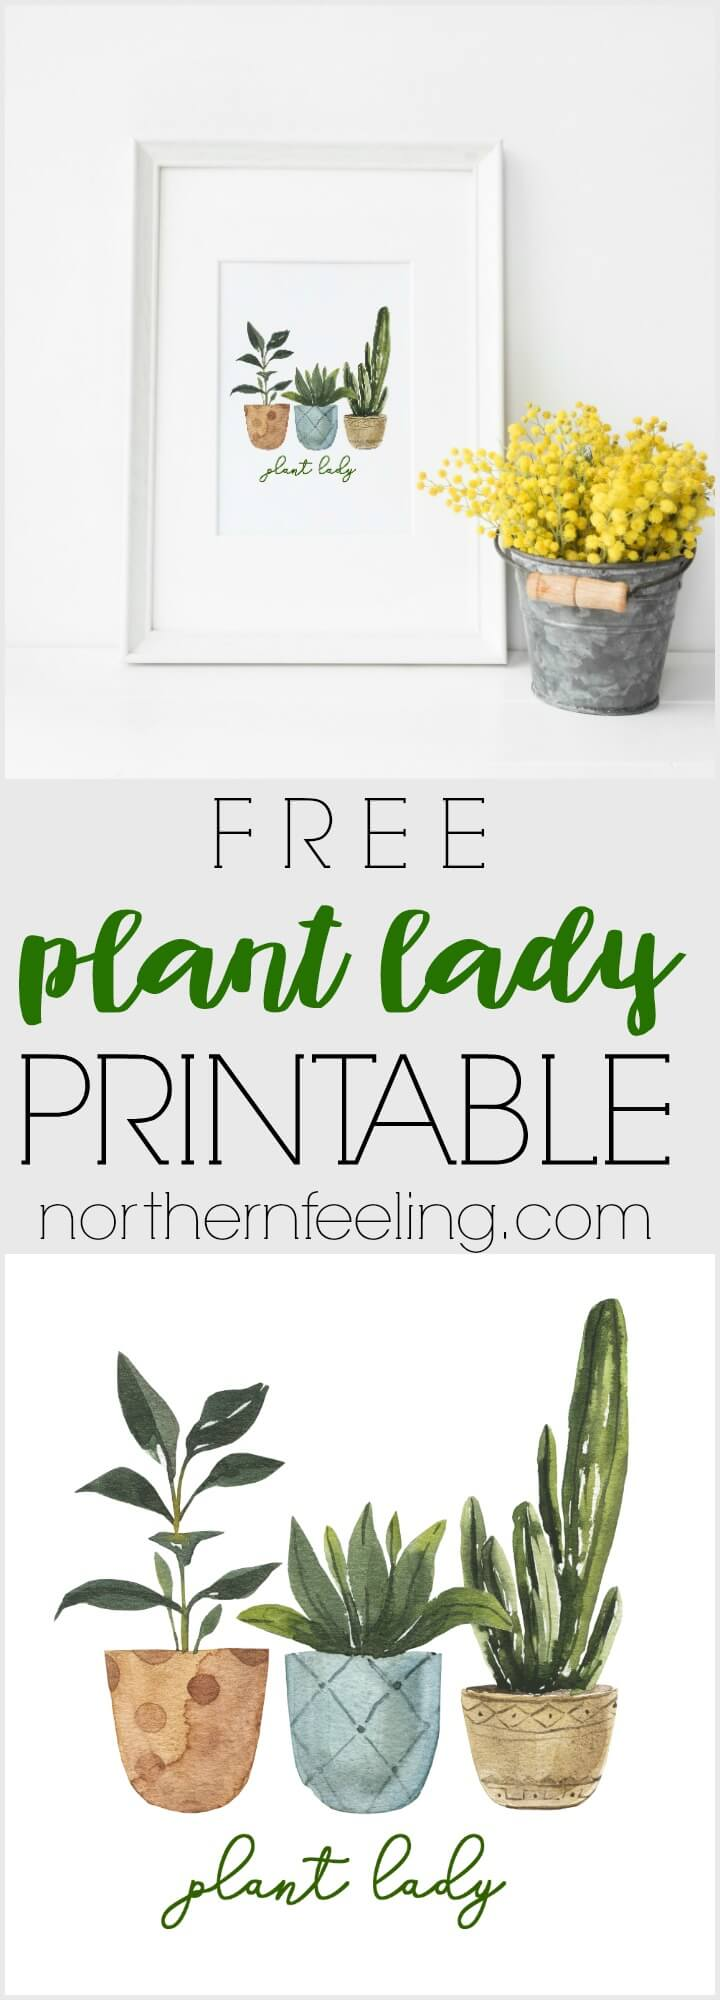 free plant lady printable // northernfeeling.com